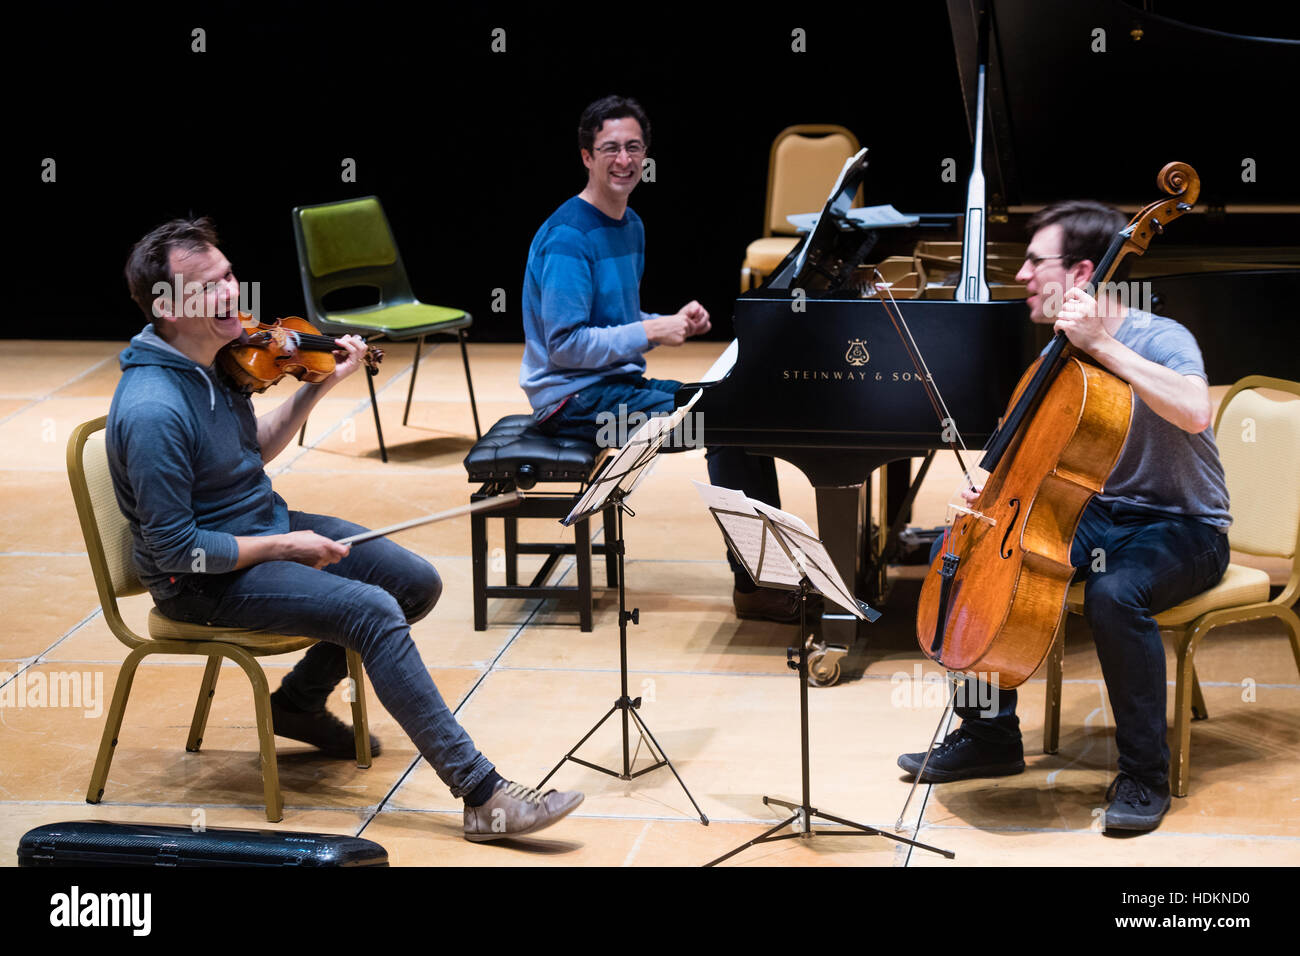 Tom Poster (piano), Guy Johnston (cello) and Magnus Johnston (violin) rehearsing for their evening concert at MusicFest - Stock Image